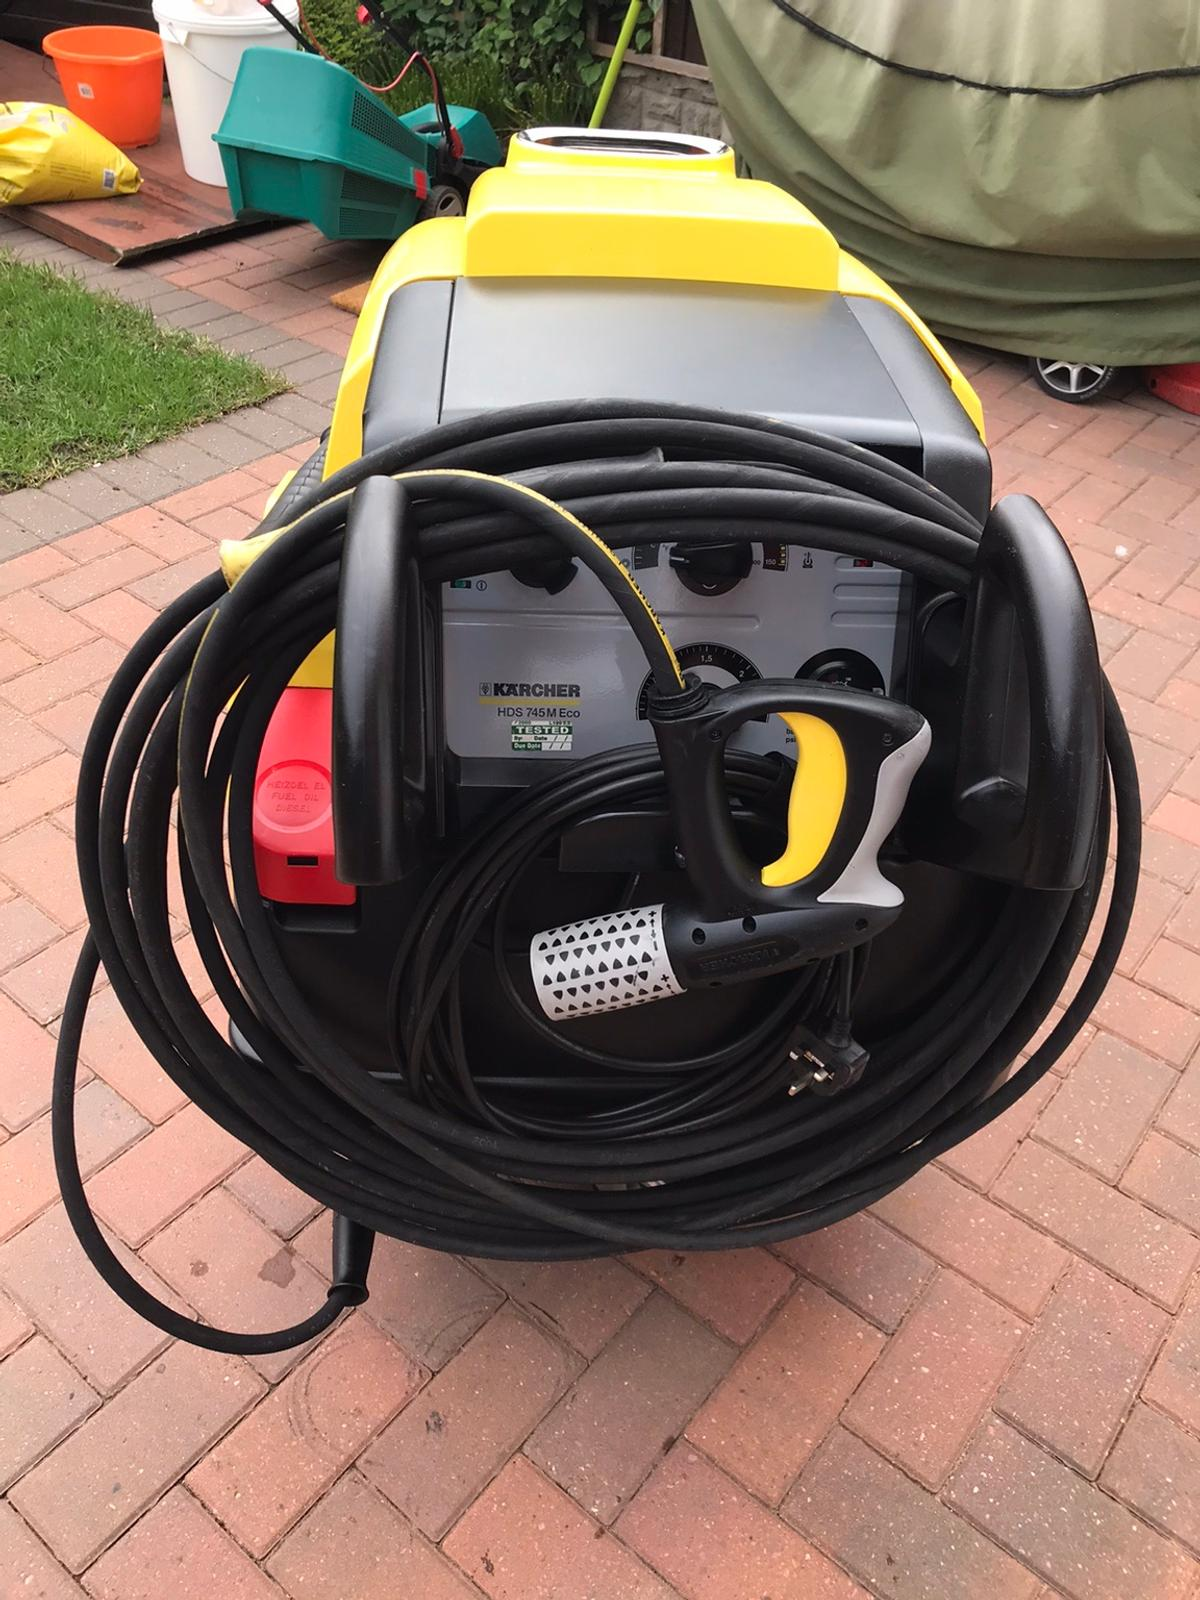 Most sought after, very reliable. Exceptional new condition. Only been used for domestic cleaning since purchased new. 240v 100 Bar pressure (Max) with 350-700 litres of Water Flow Rate Connected Load 3.2Kw Fuel tank 25 Litres( Diesel or Kerosene) Detergent Tank 20 Litres 4 Pole Electric Motor Easy Press Trigger Gun with Variable Servo Control (Water/Pressure Adjustment) Original Operation Handbook 20 Mtr (2 x 10 mtr) Karcher OEM HP Hose Karcher OEM Dirt Blaster Attachment Collection only